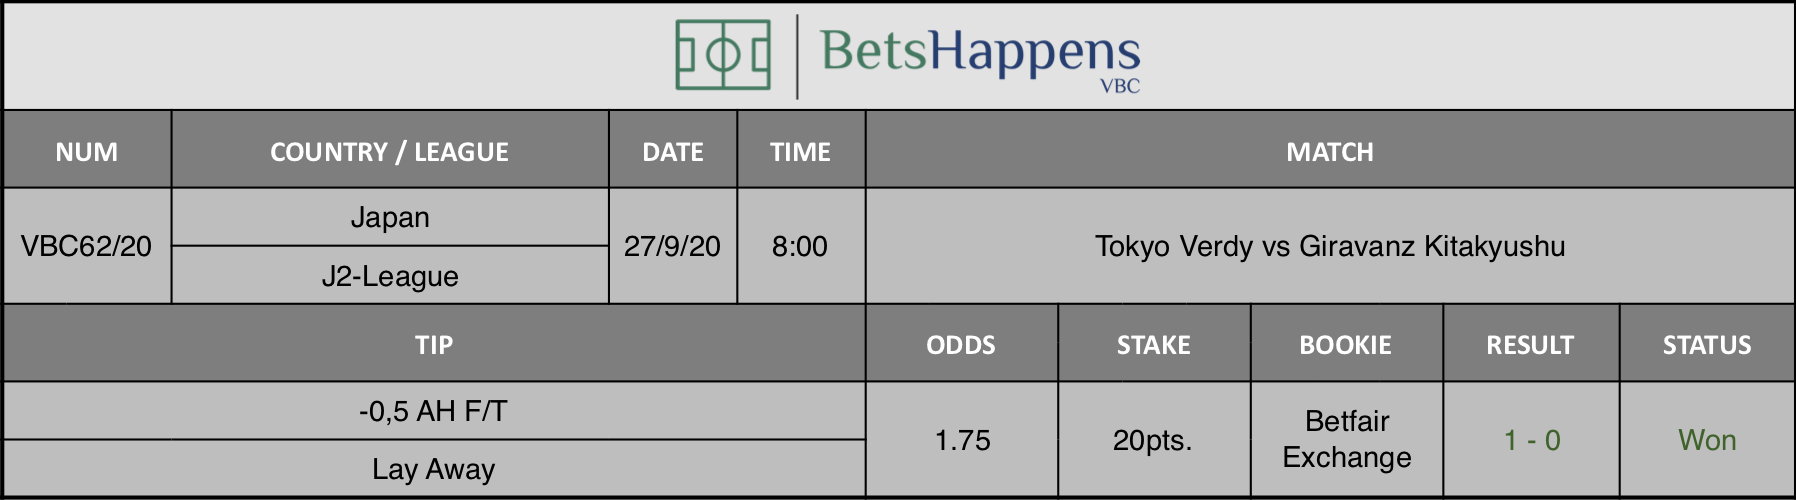 Results of our advice for the Tokyo Verdy vs Giravanz Kitakyushu match where -0.5 AH F / T Lay Away is recommended.